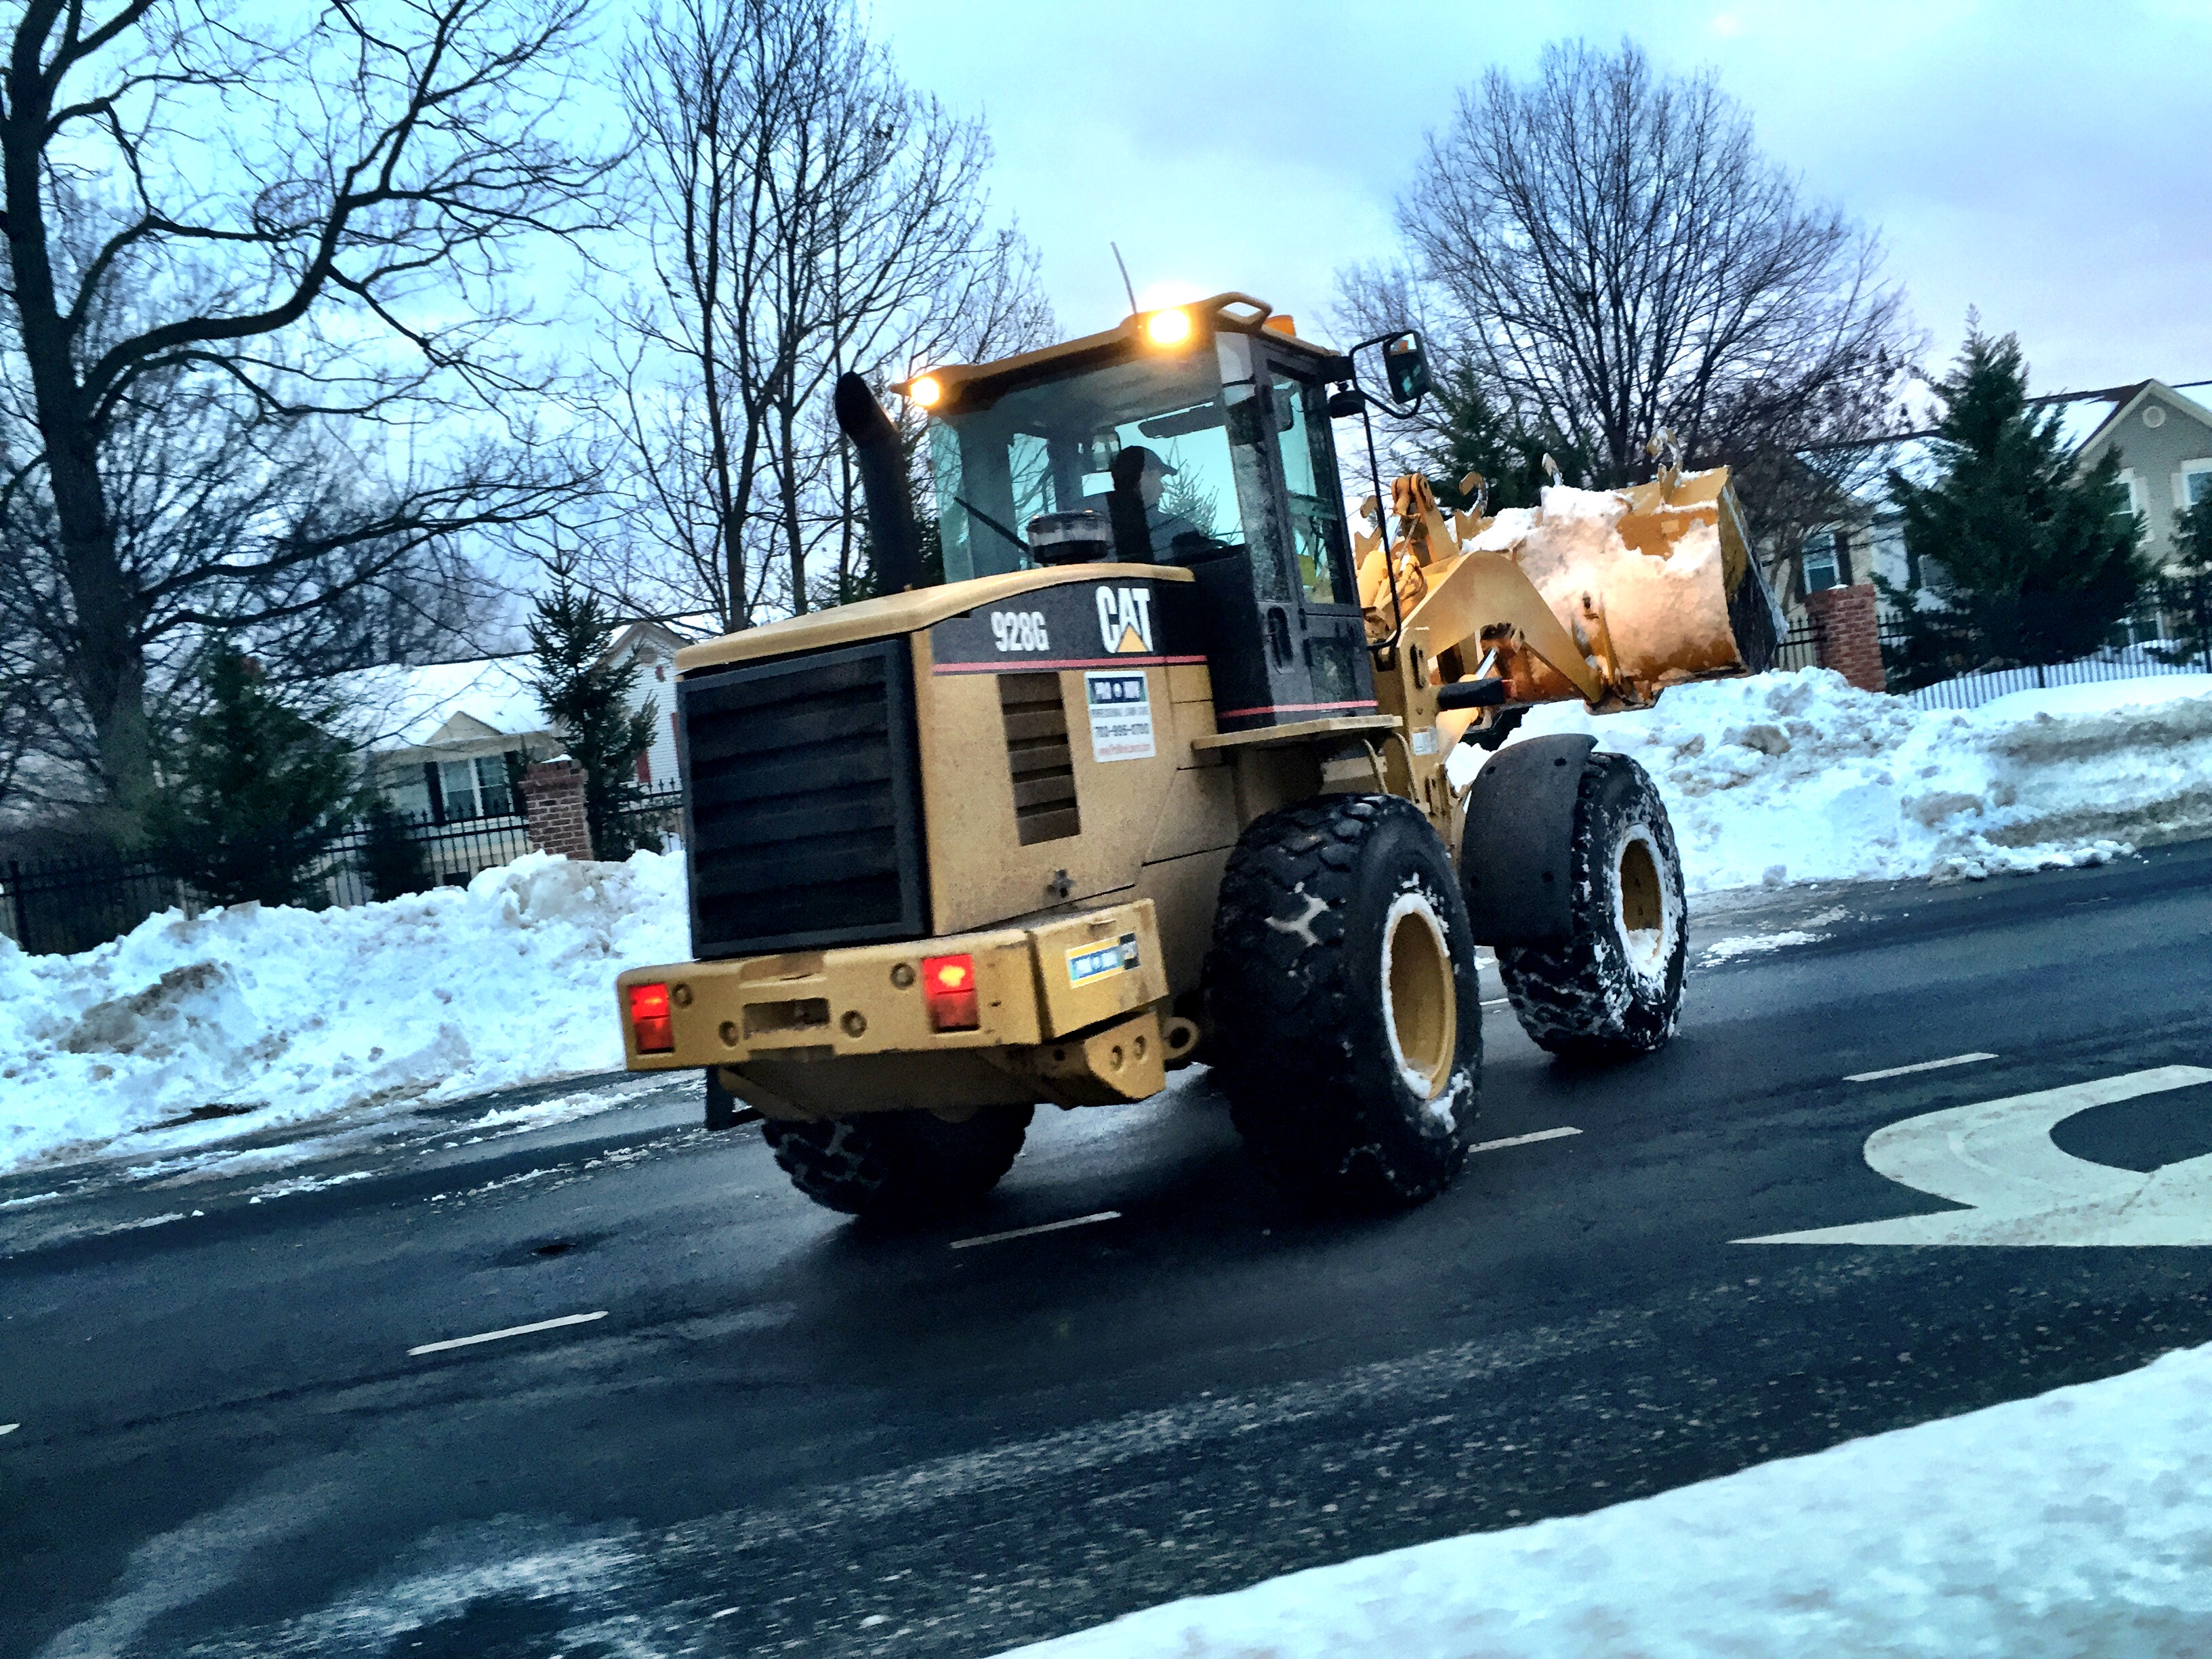 Roads are better, but 'we are not ready for rush hour yet'